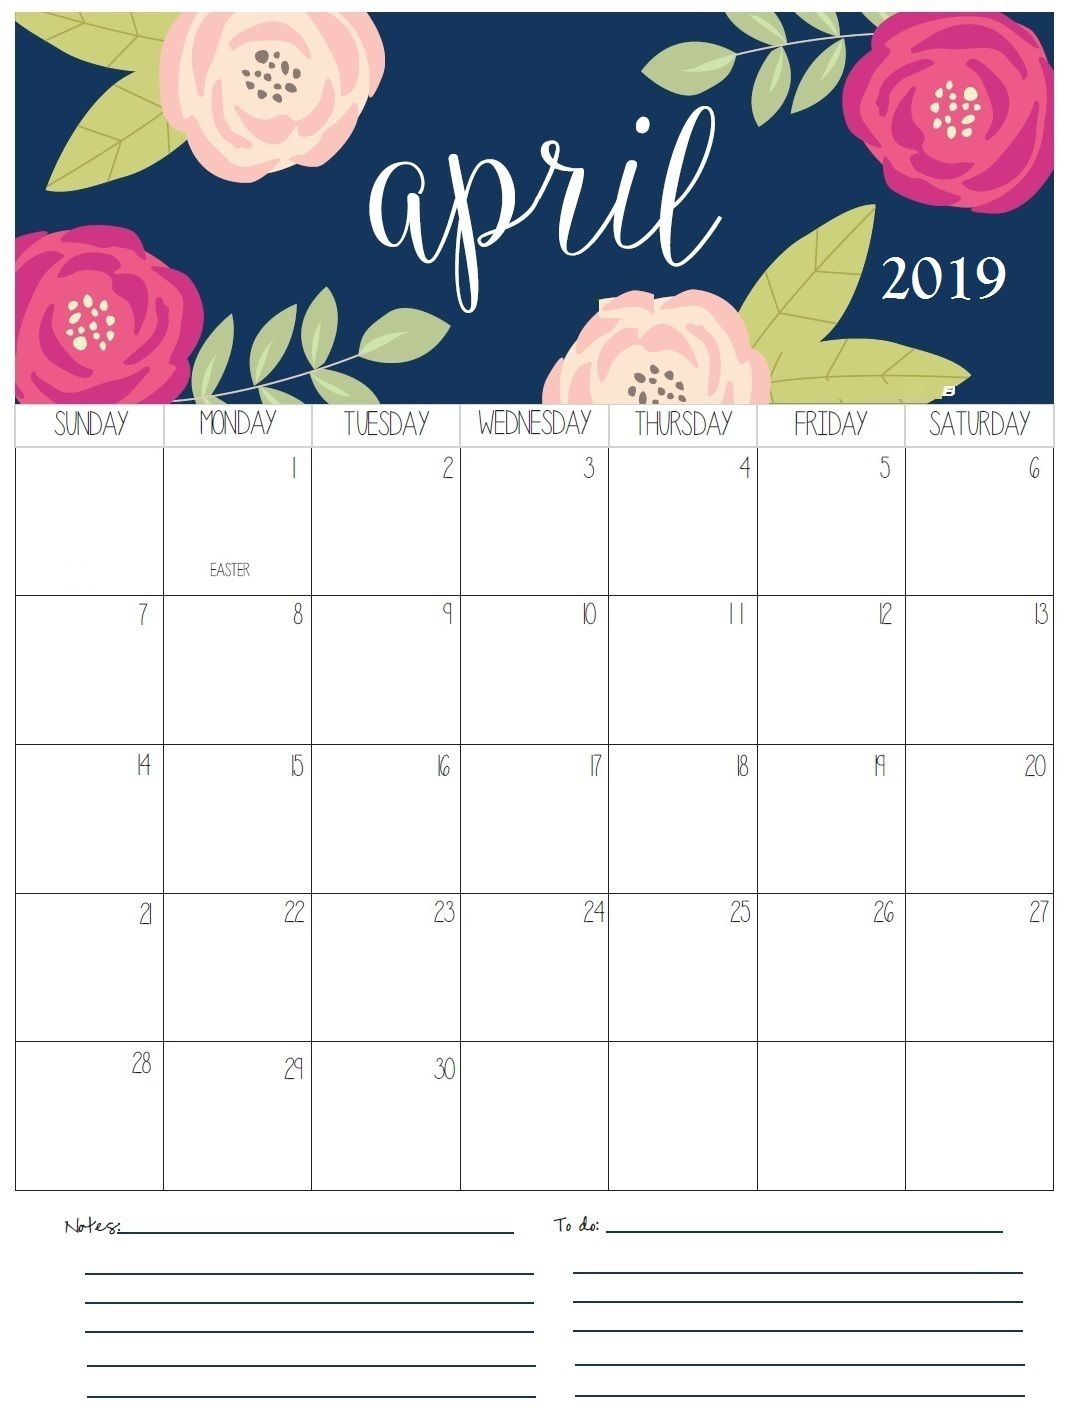 april monthly calendar 2019 organize pinterest printable::April 2019 iPhone Calendar